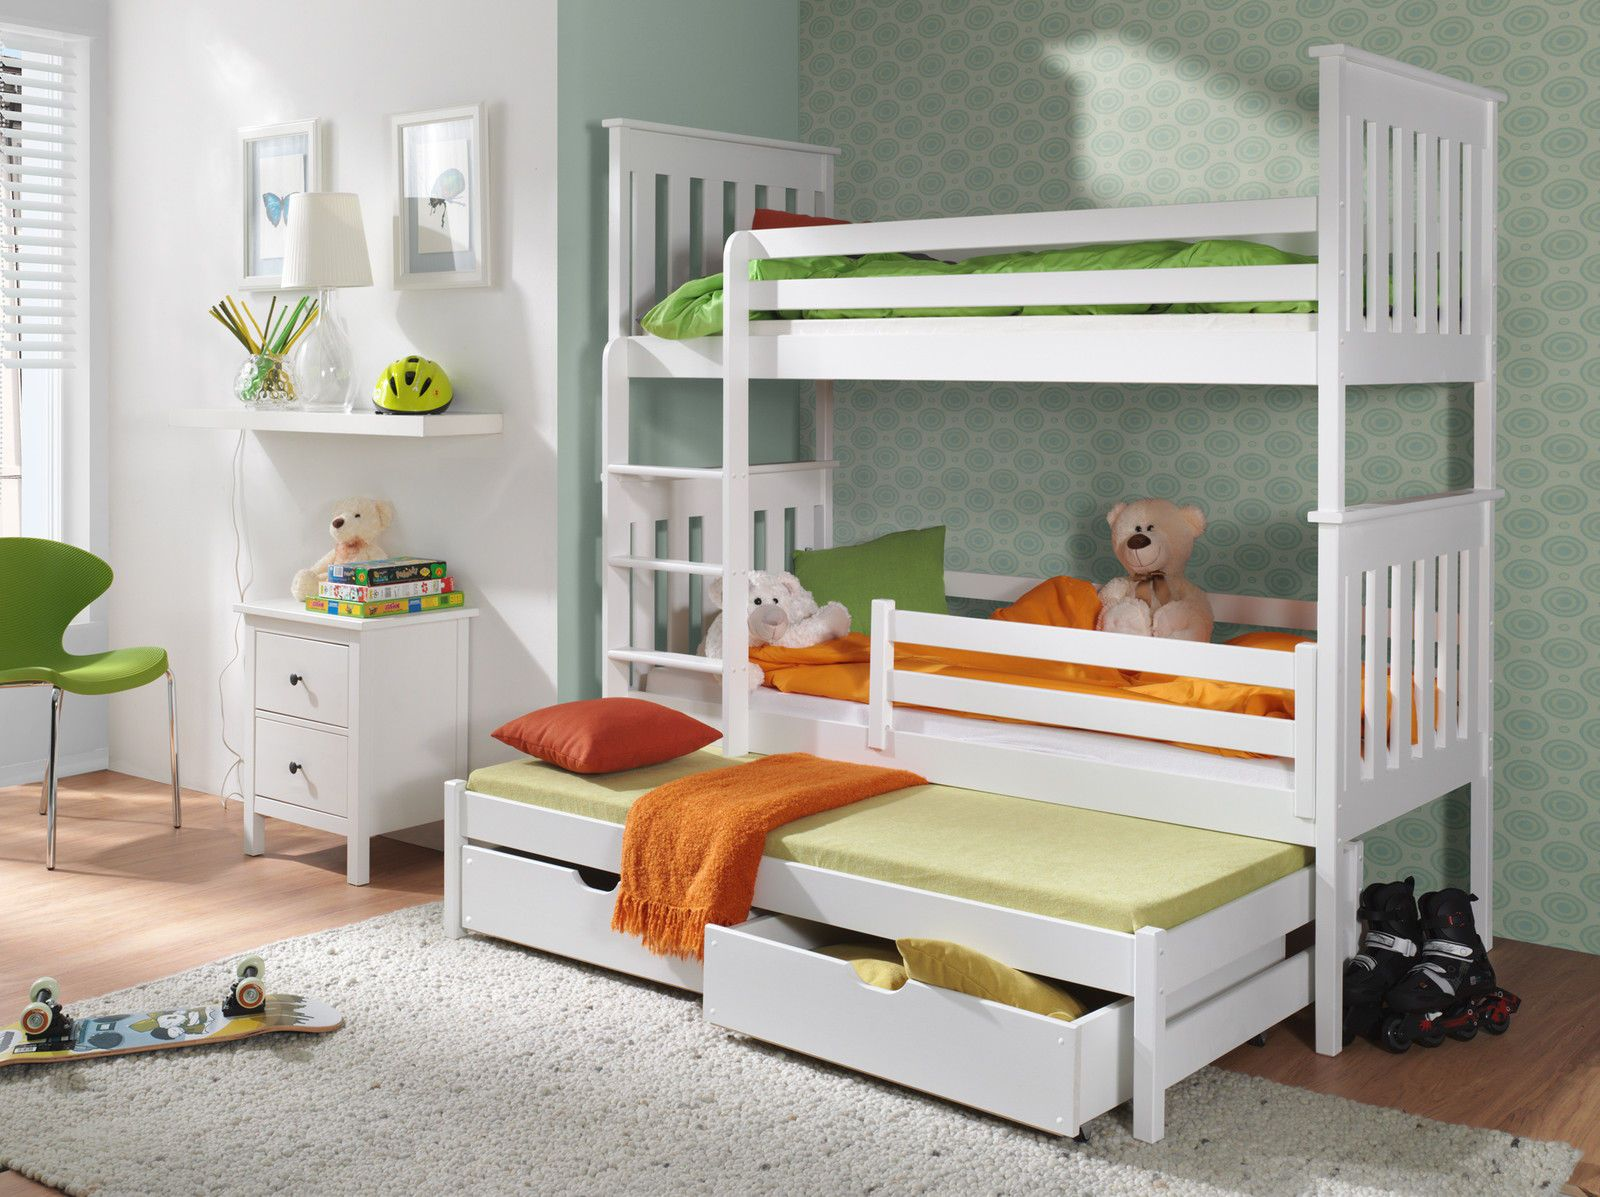 hochbett jarek bett mit matratze kinderbett kinderzimmer farbauswahl ebay hochbett. Black Bedroom Furniture Sets. Home Design Ideas